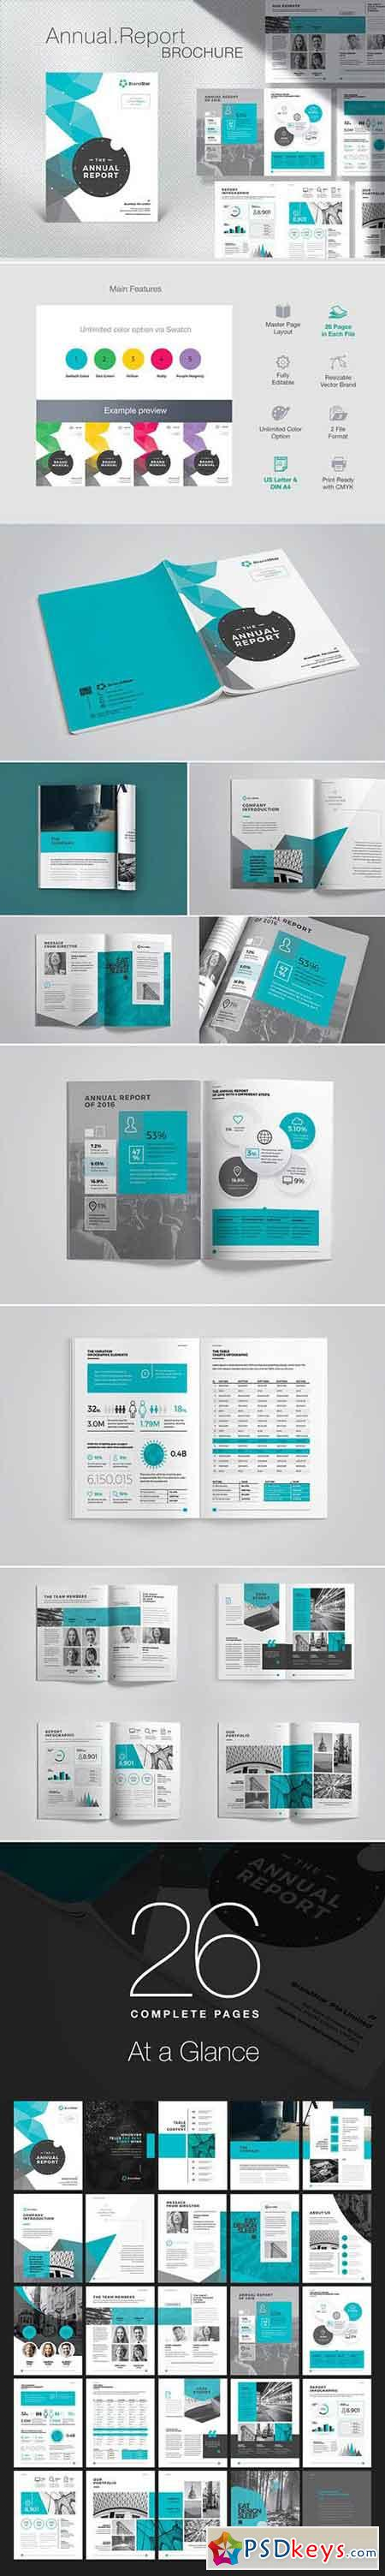 Annual Report Brochure 2019 3374233